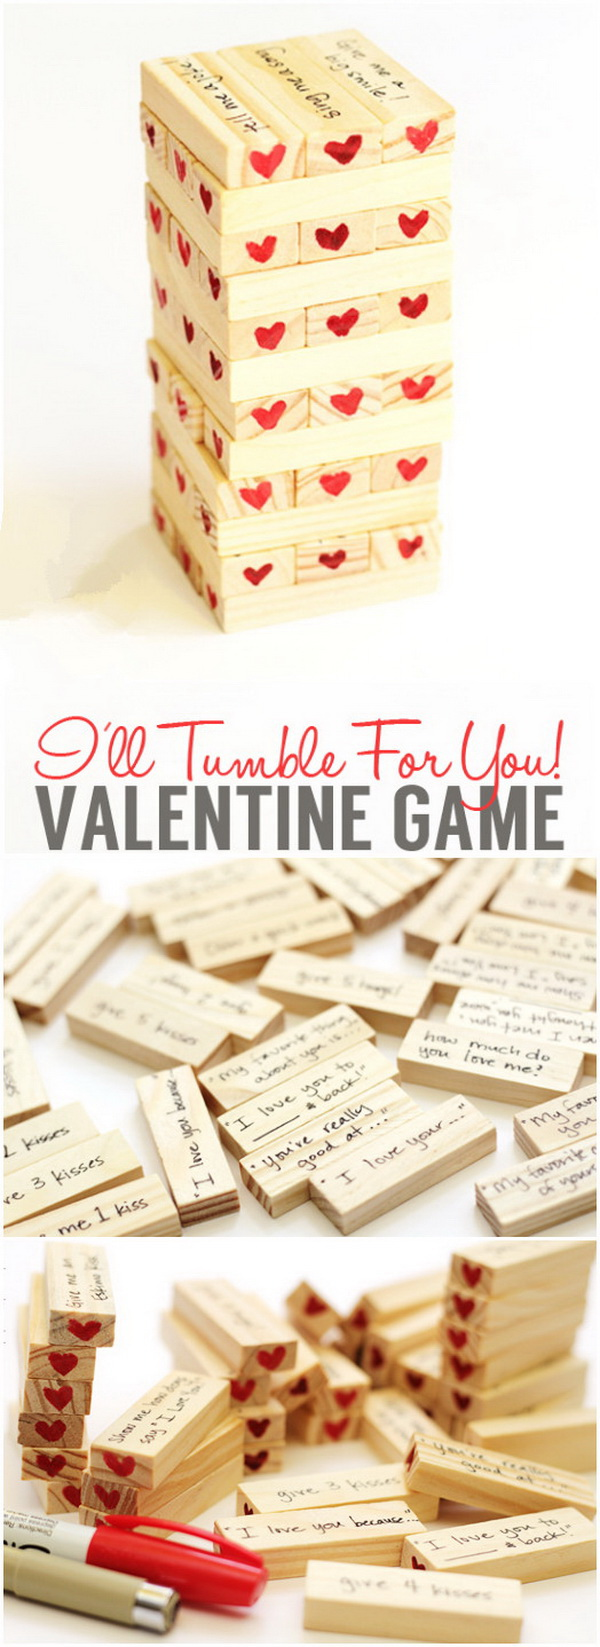 Valentine gift ideas for him diy